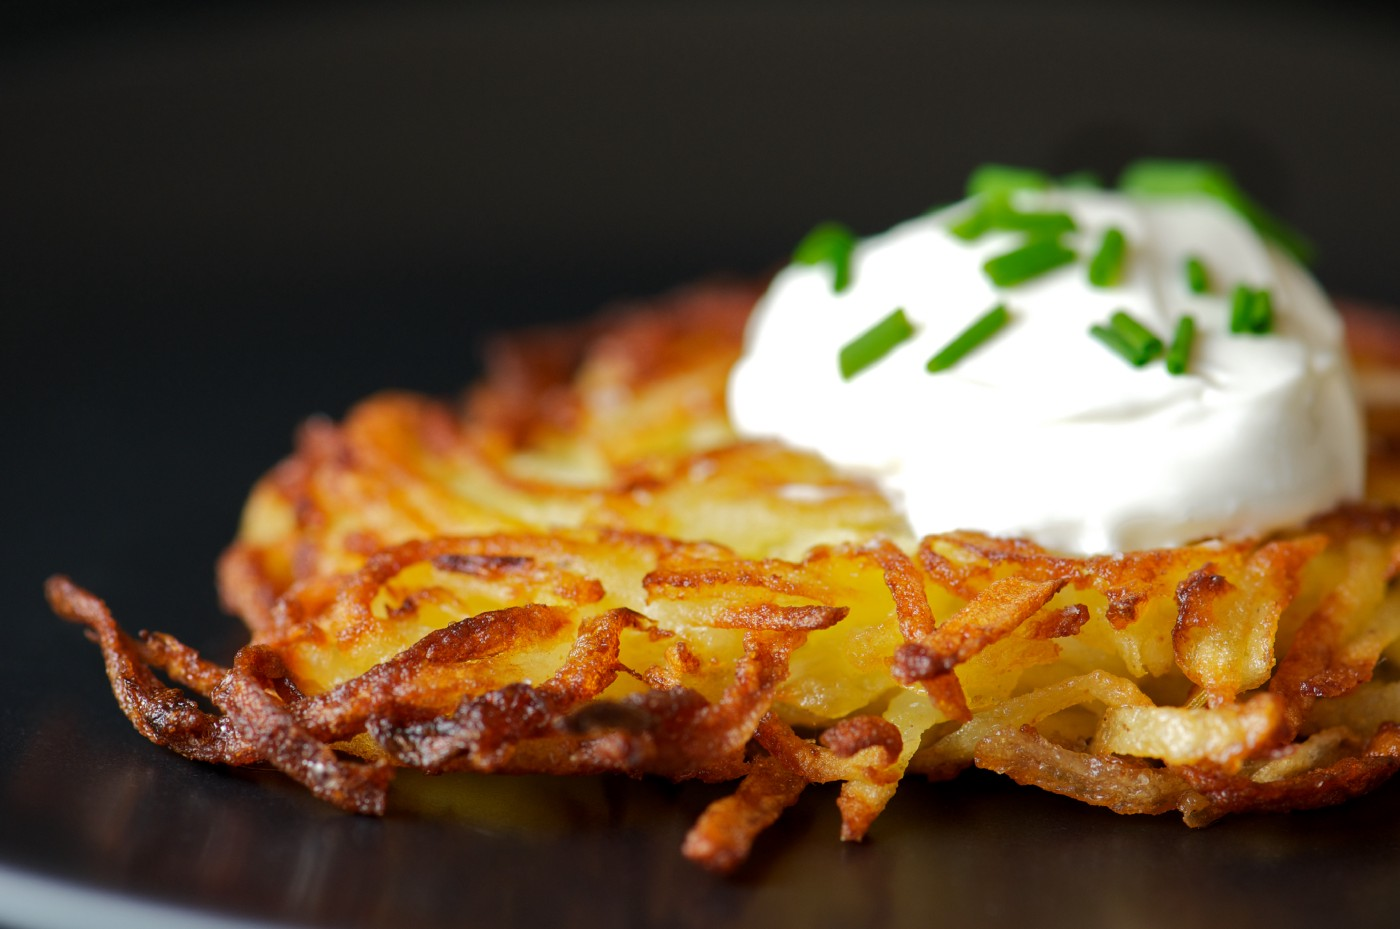 A close-up of a latke.